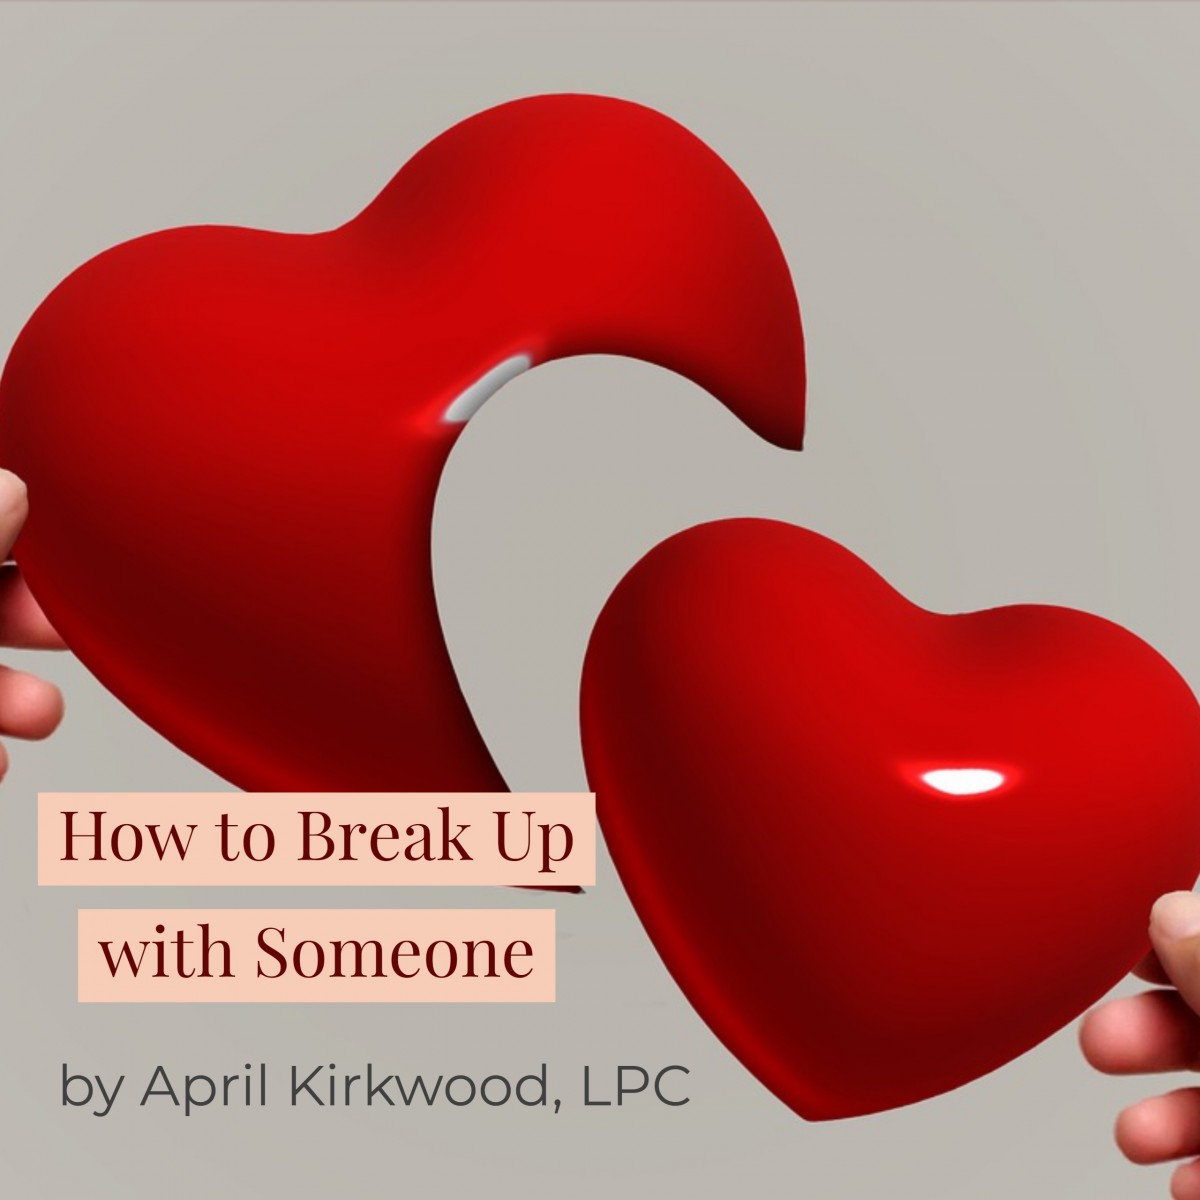 How to Break Up with Someone by April Kirkwood2